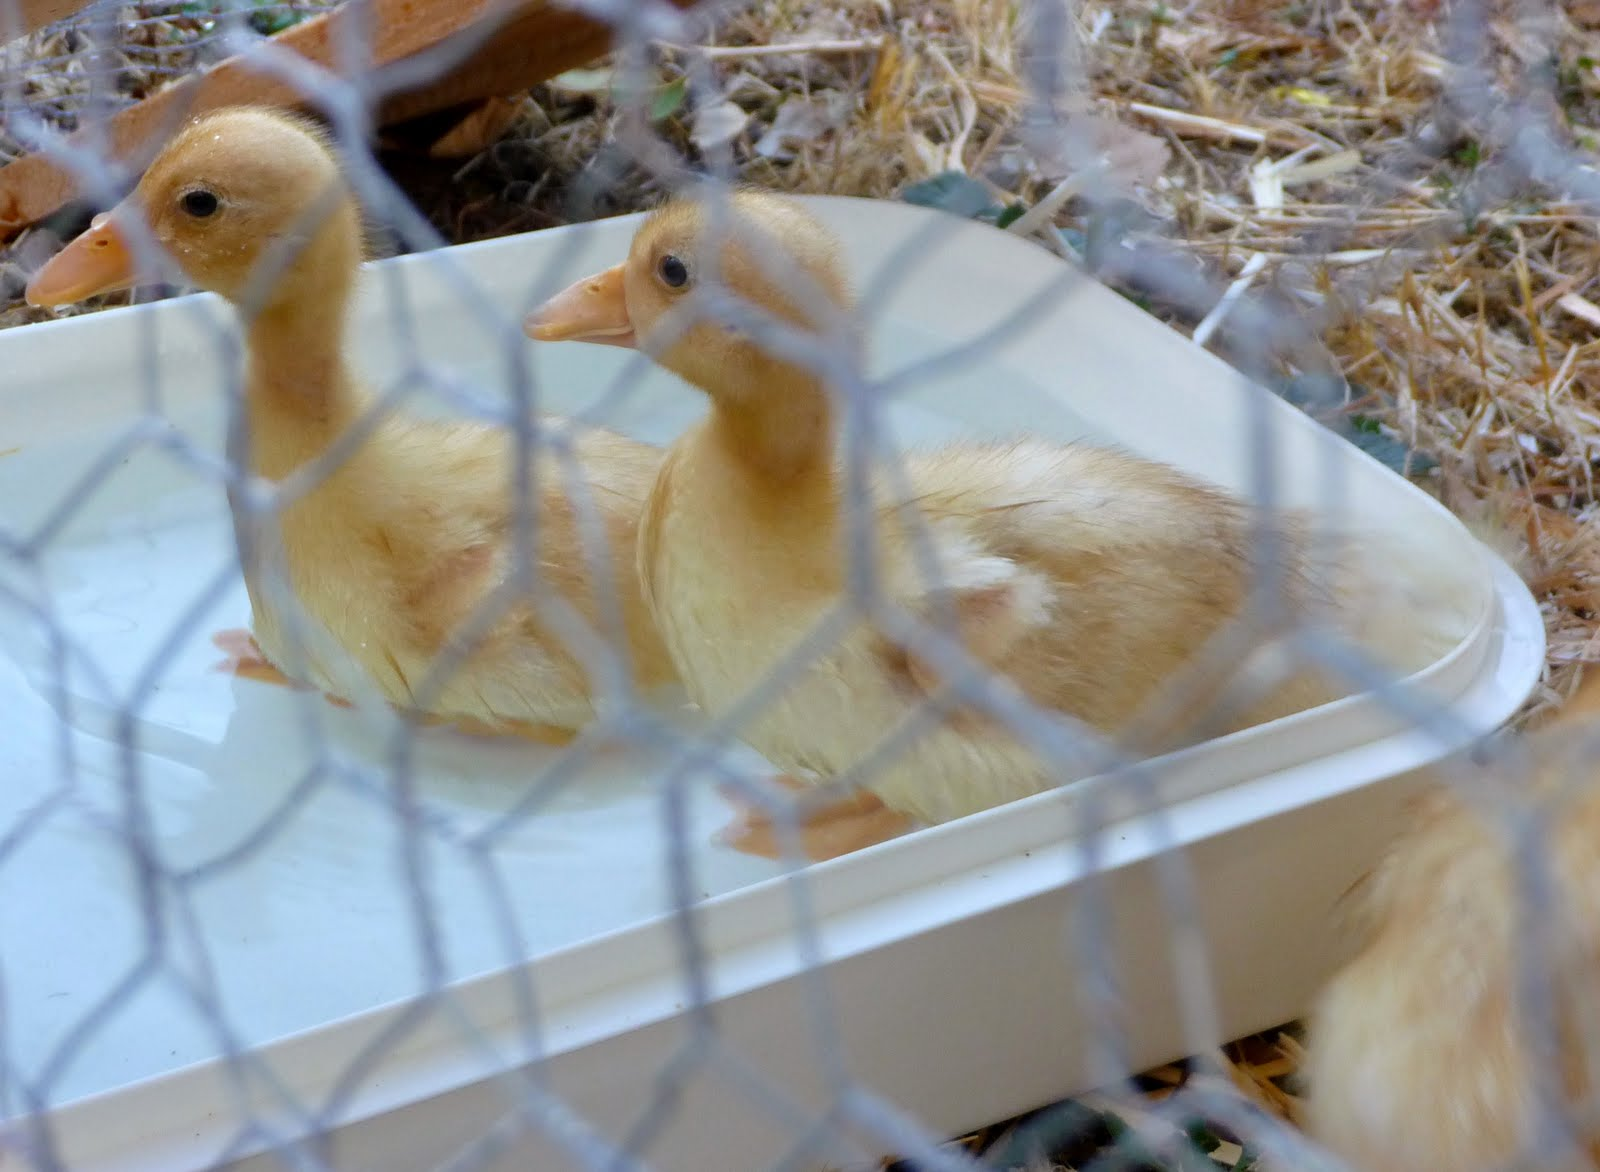 Call Duck Breeding http://farmer-rosehillfarm.blogspot.com/2011/04/raising-call-ducks.html